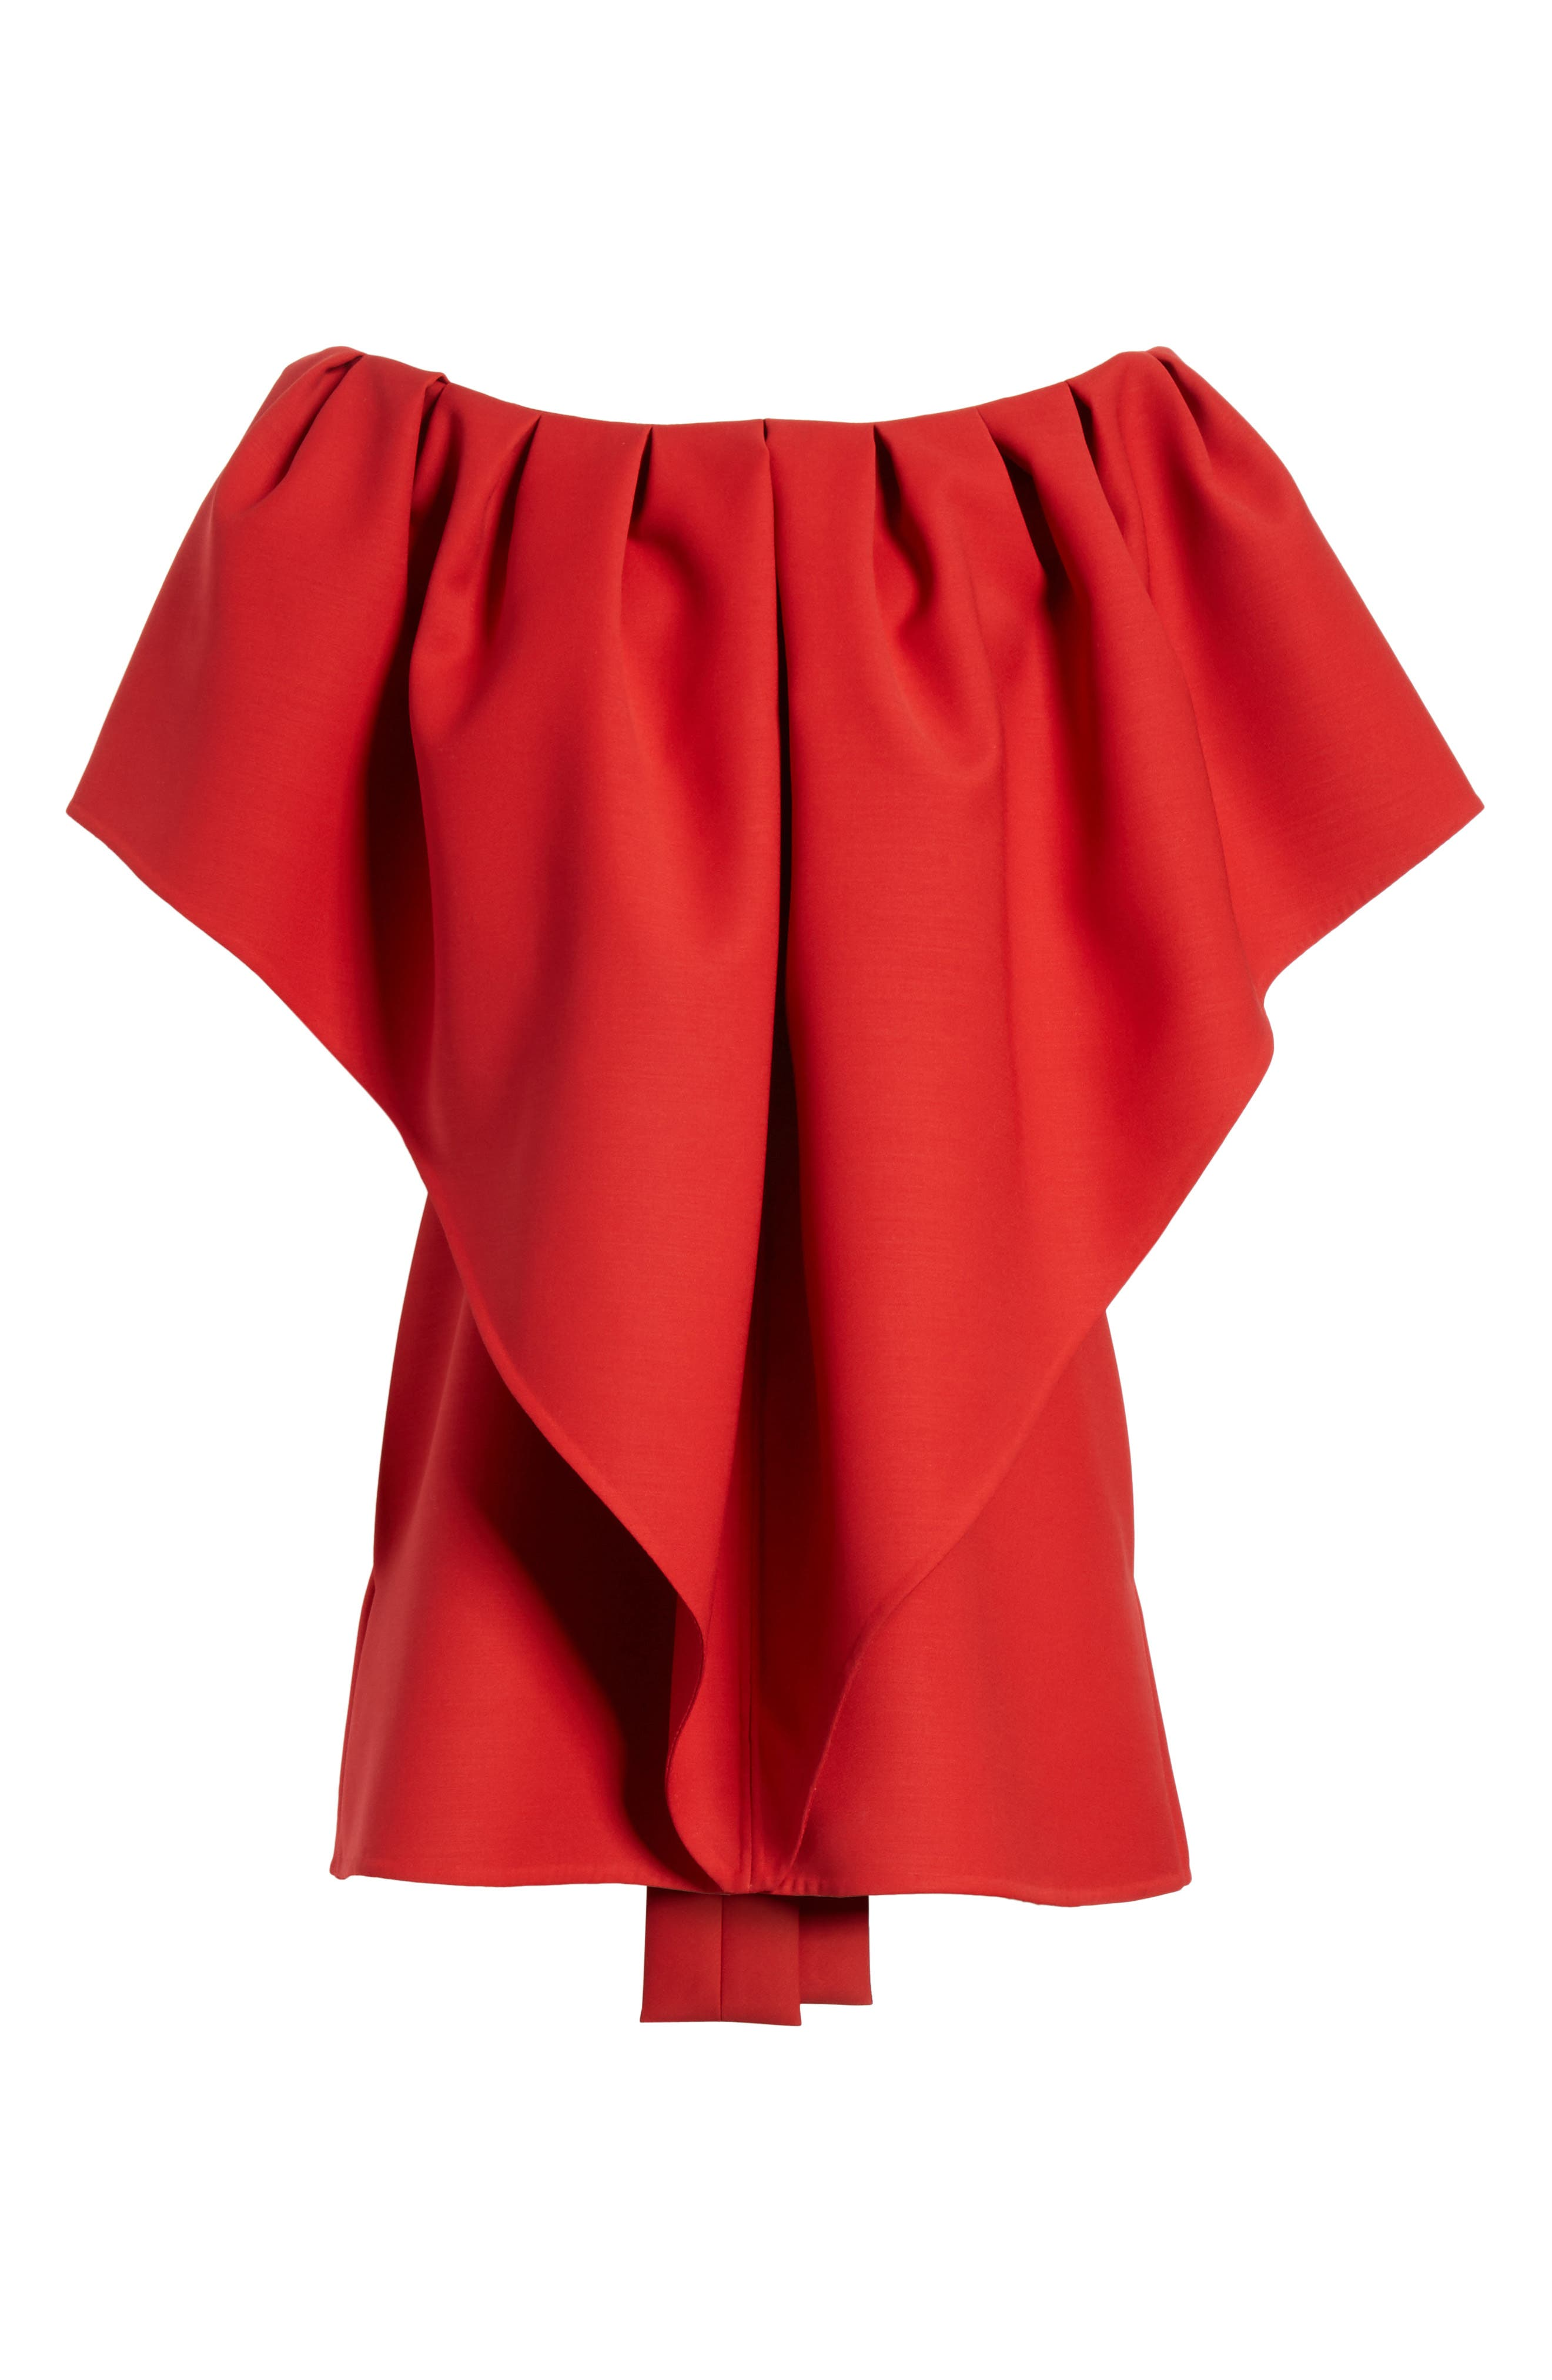 Very Valentino Off the Shoulder Dress,                             Alternate thumbnail 7, color,                             Red